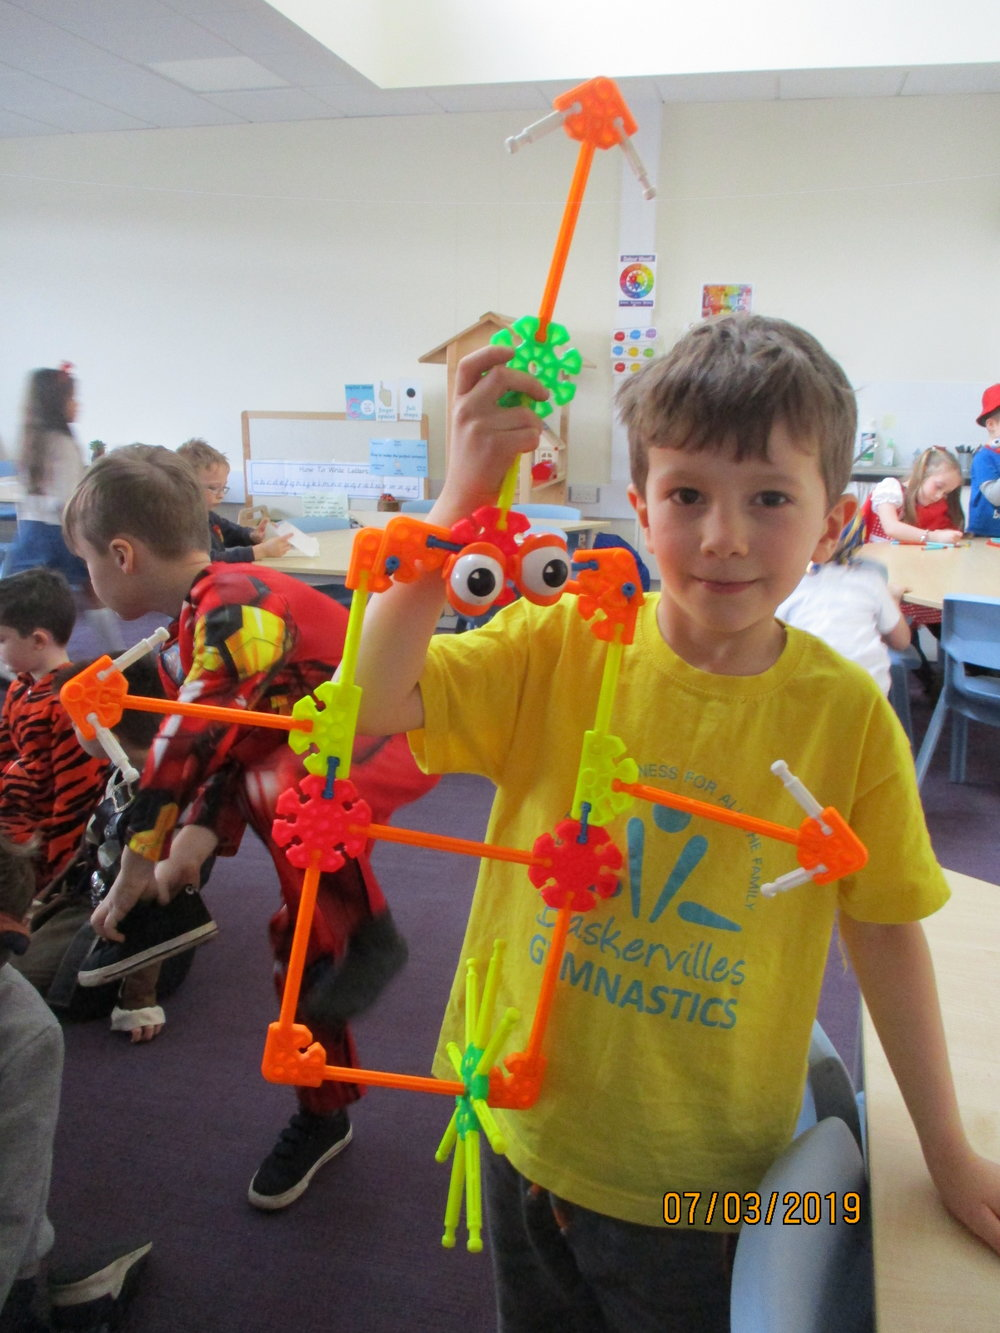 We love being engineers and inventors. Learning through play by designing and creating is one of our favourite things to do together.